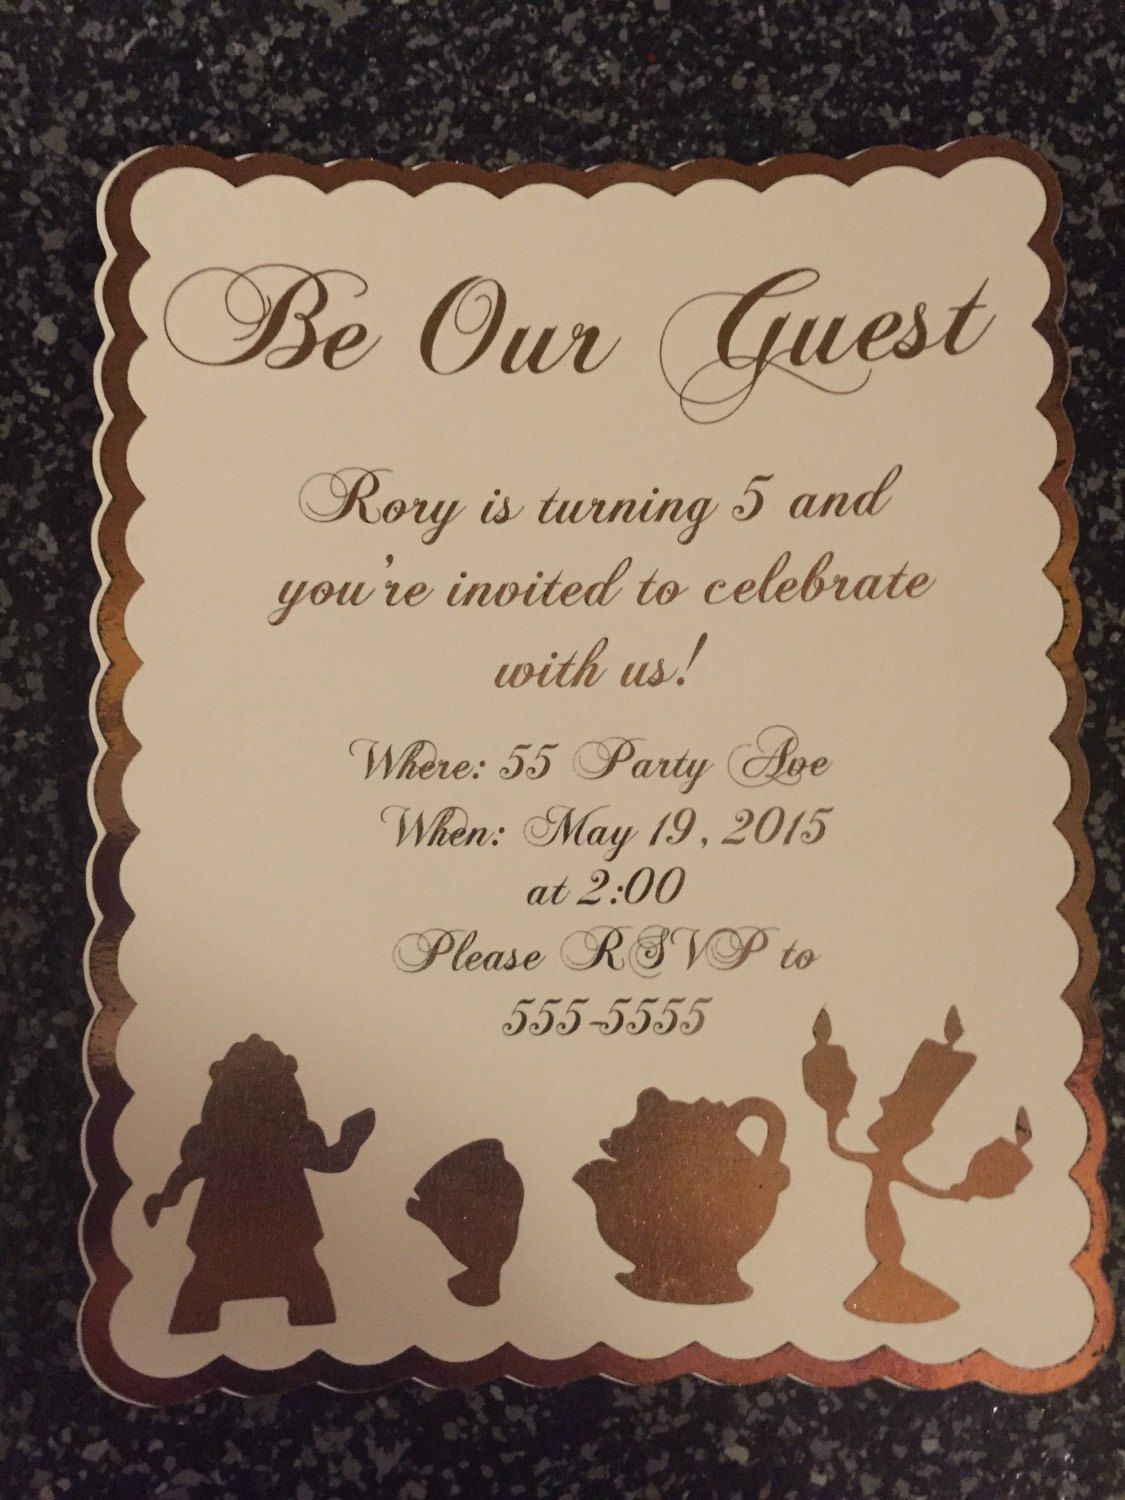 beauty and the beast invitations  be our guest